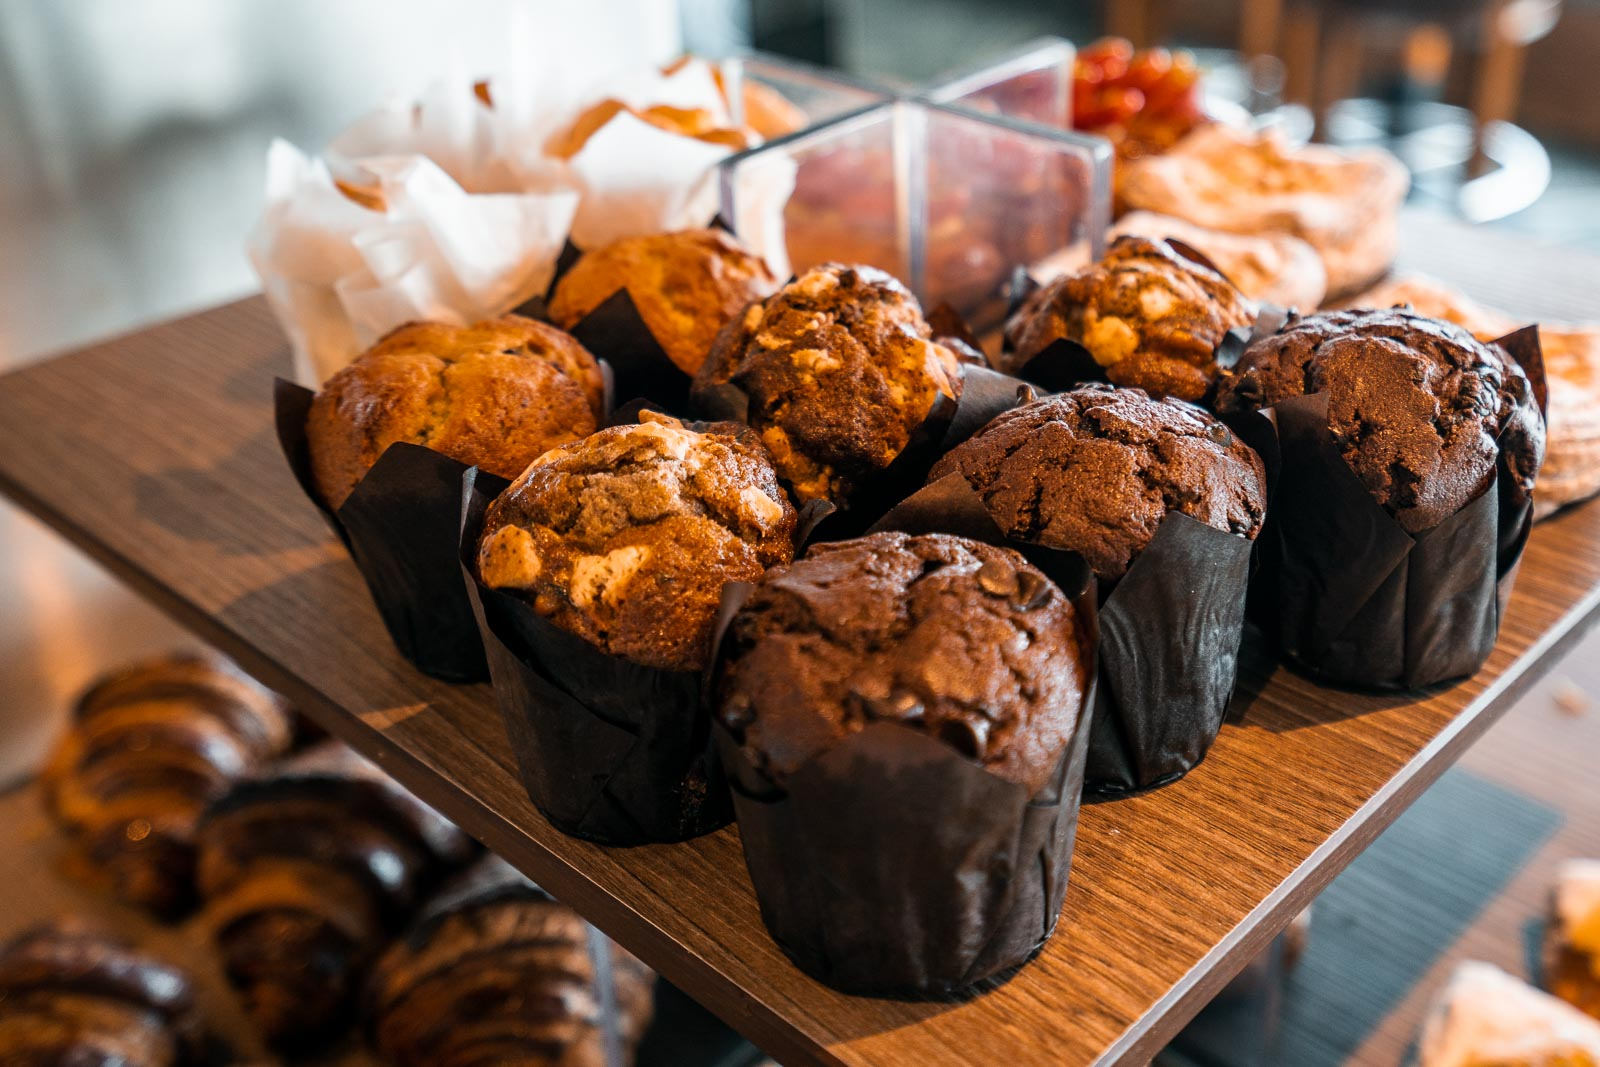 Muffin selection for breakfast